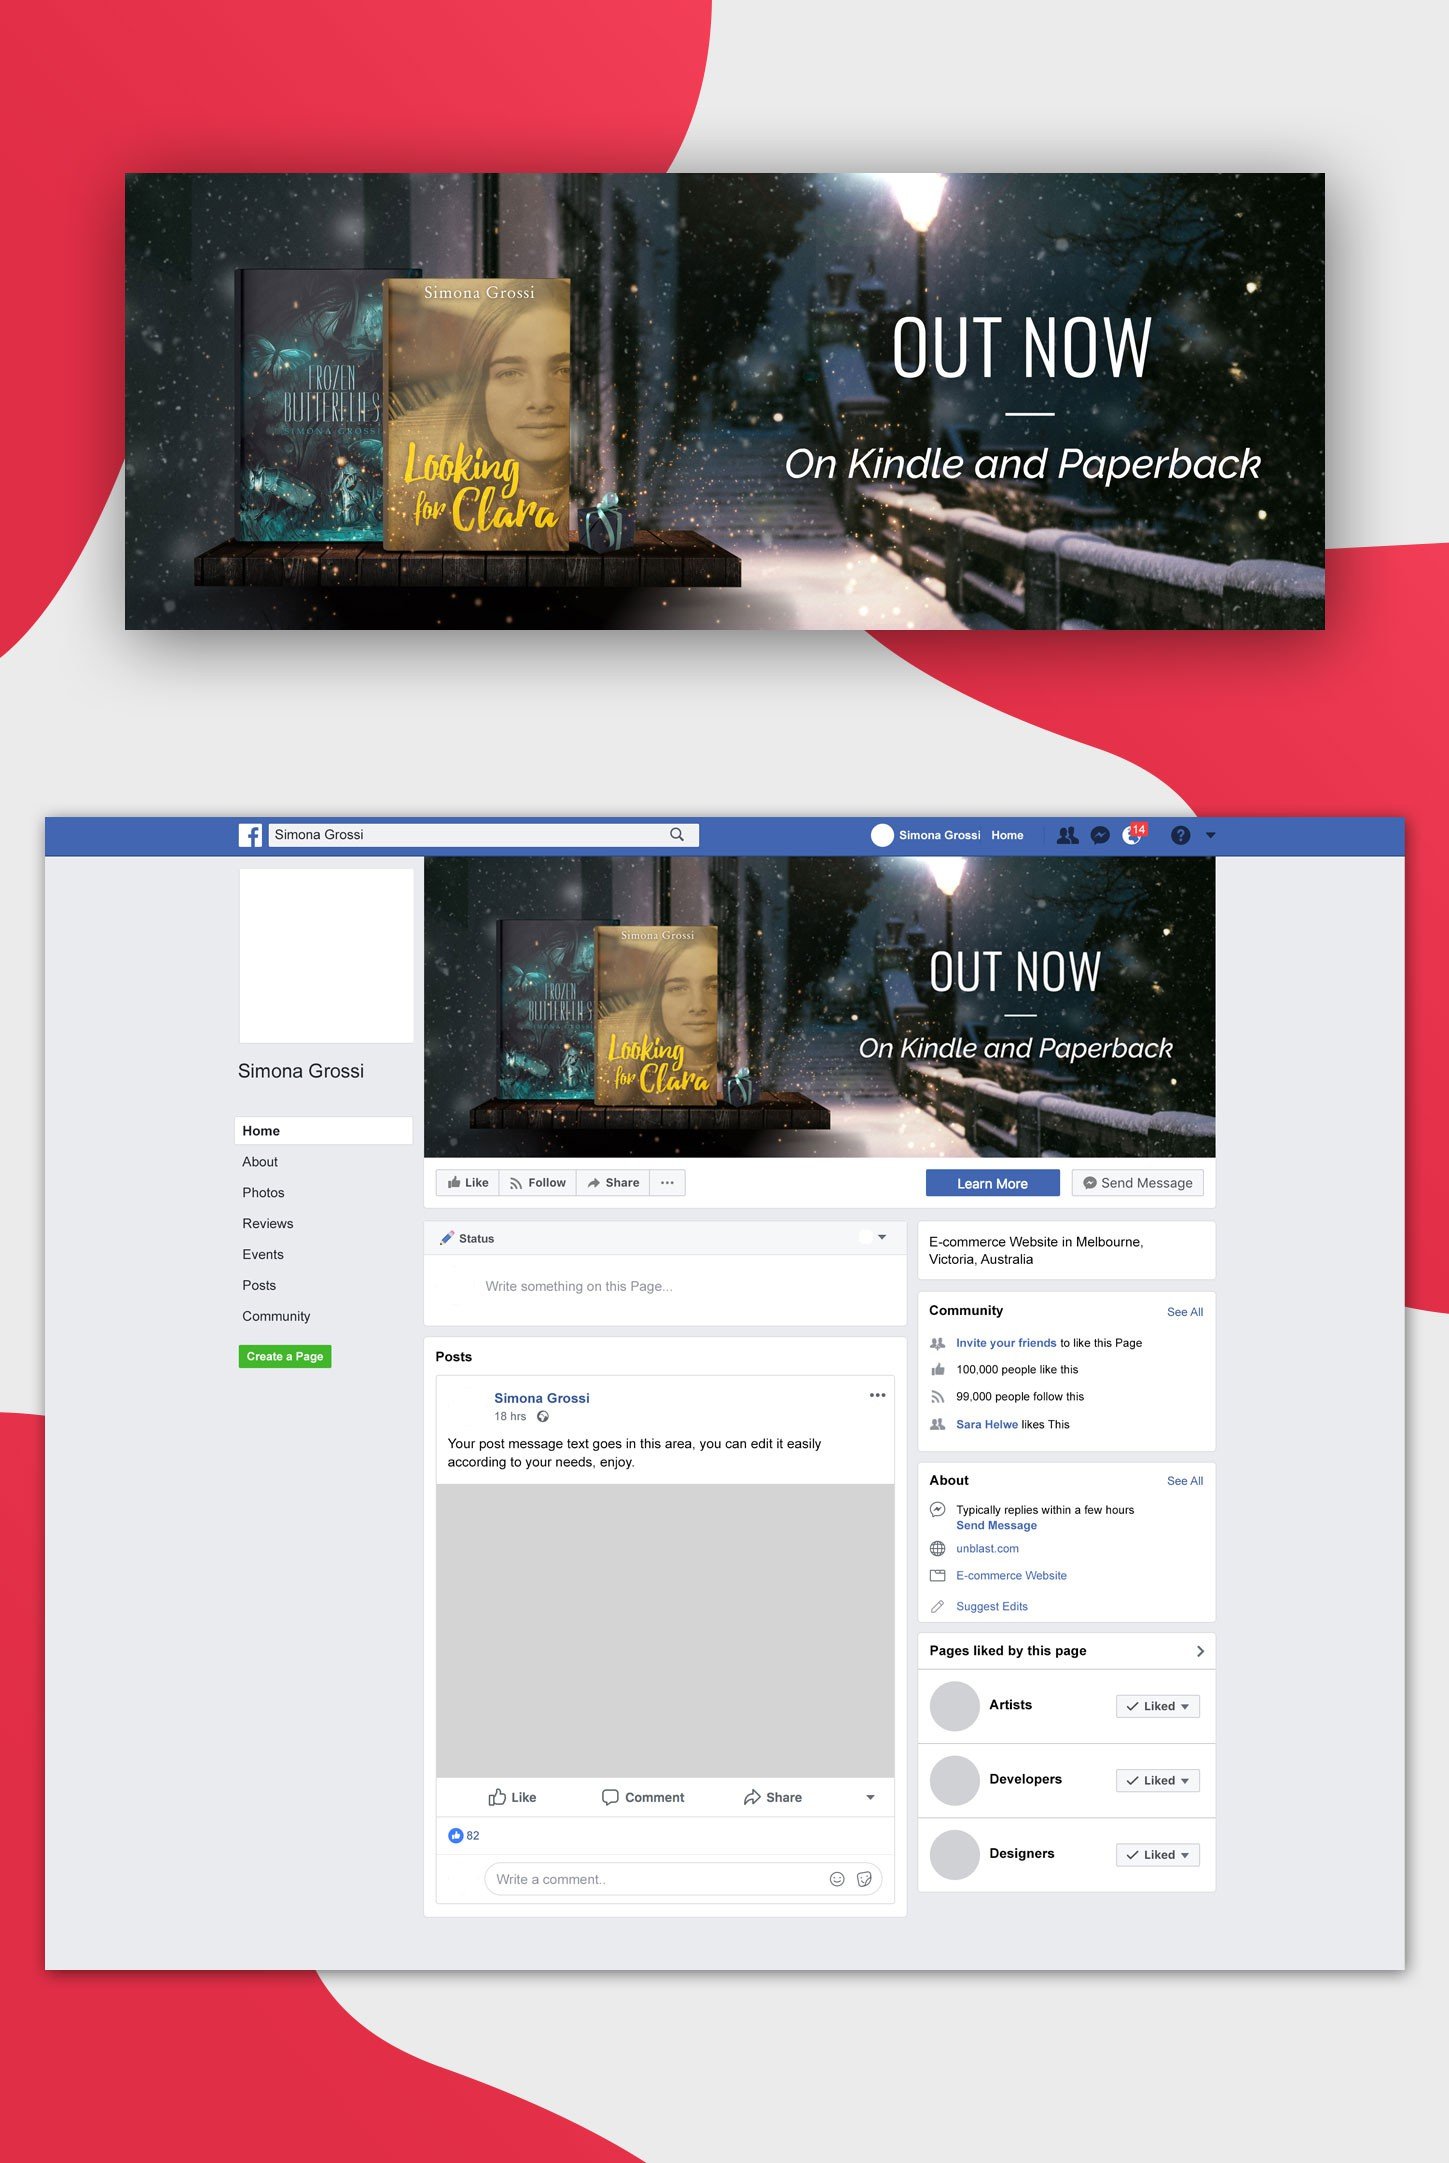 Facebook cover to promote two great books during the holidays